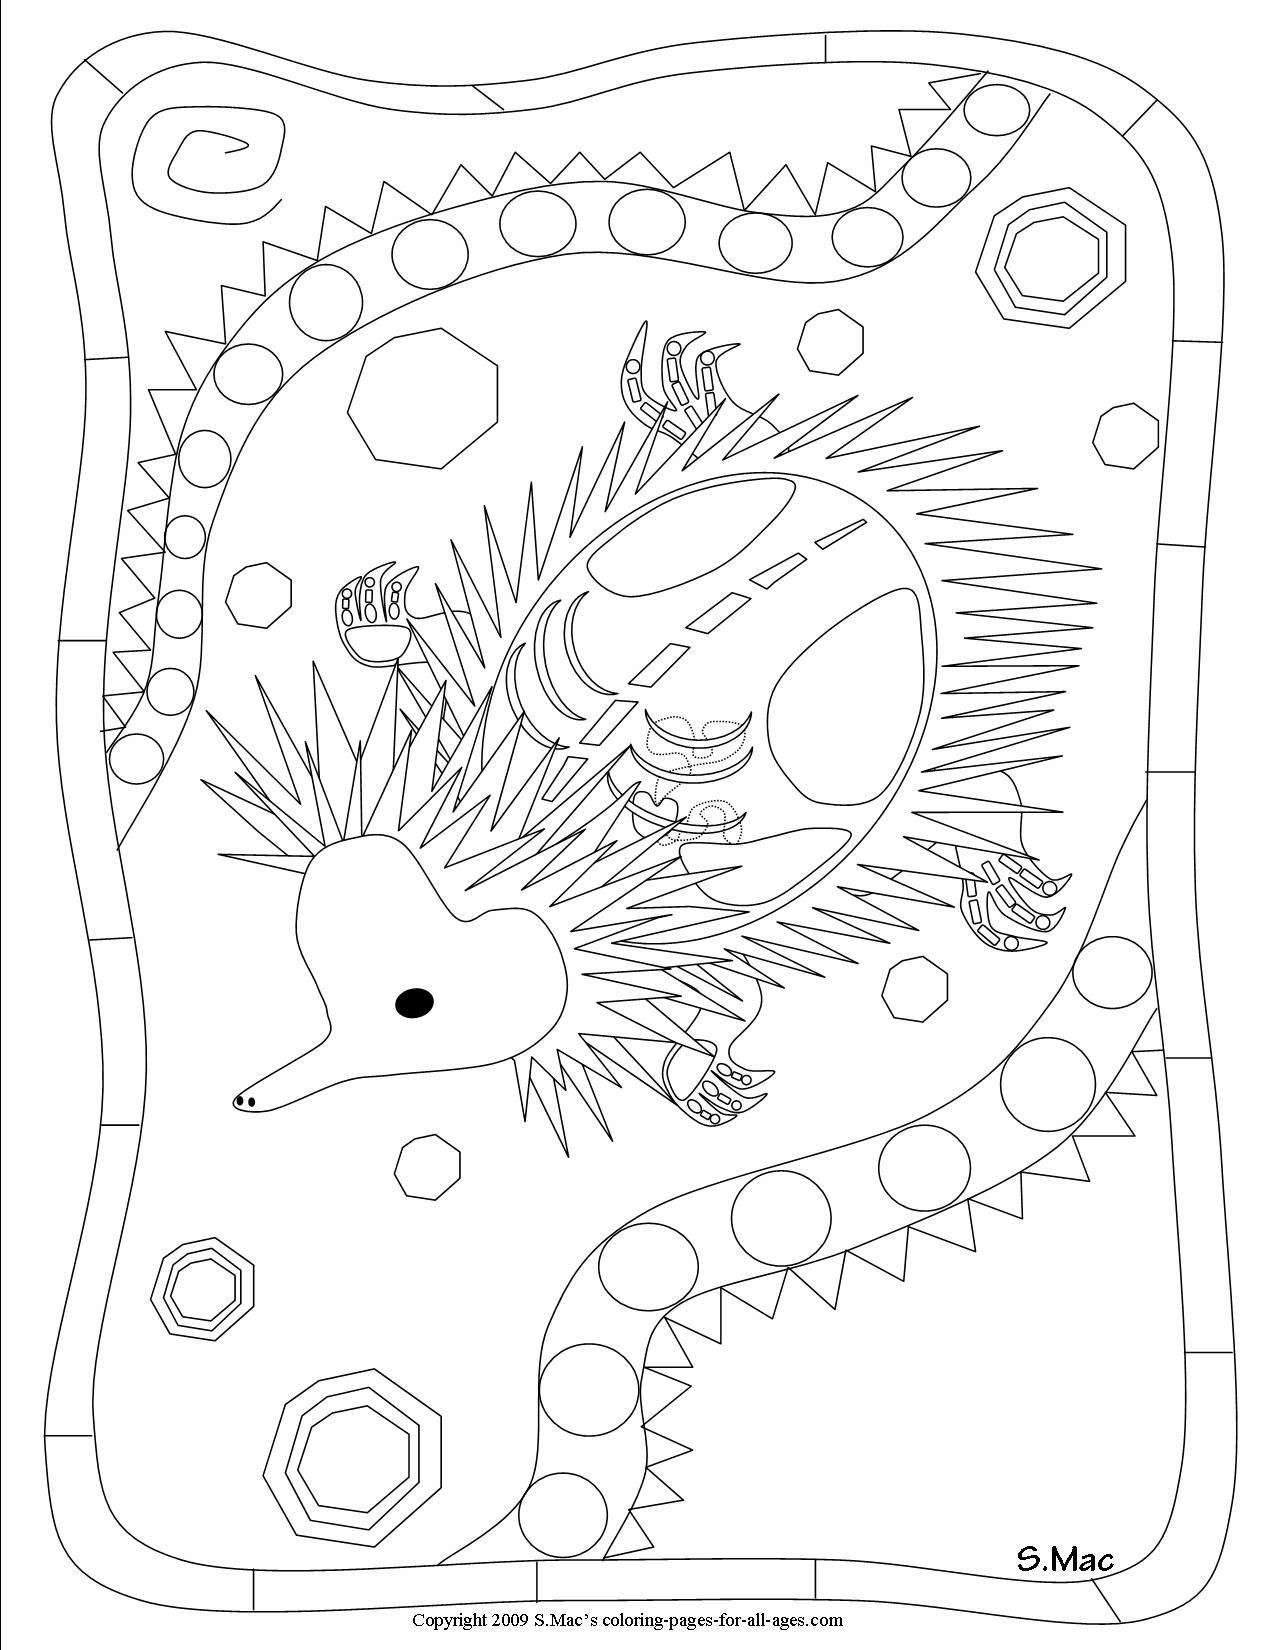 Sc S Echidna X Ray Art Coloring Page Australie